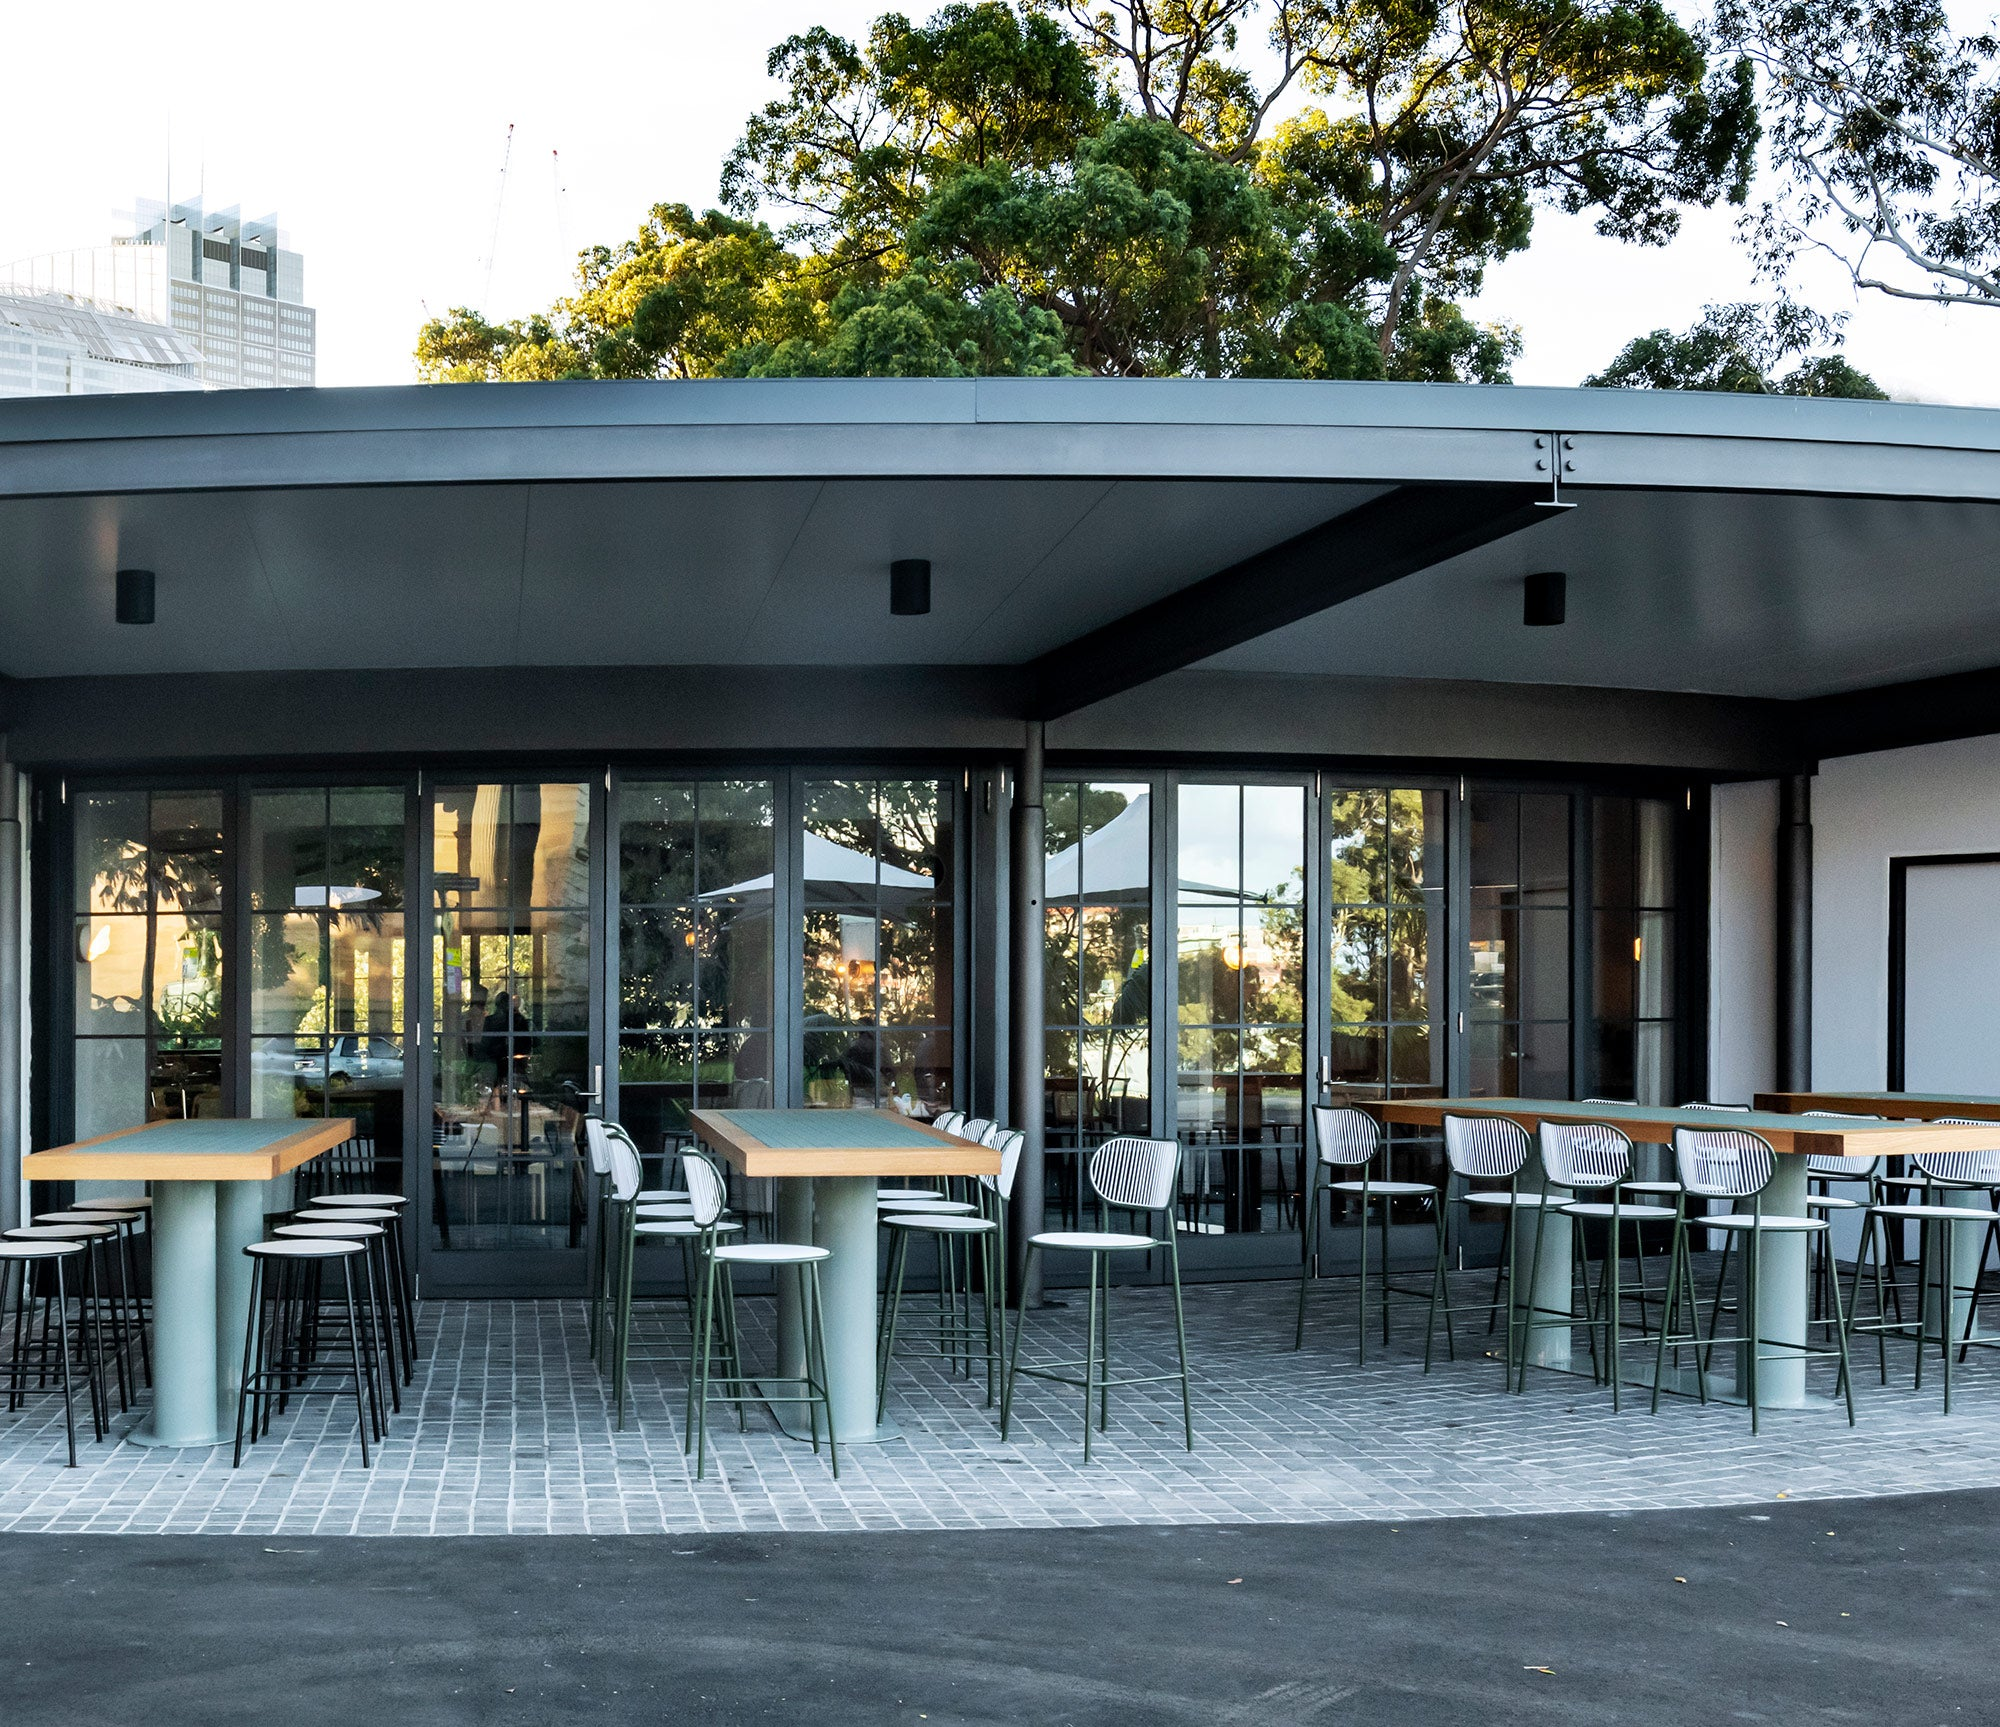 Terrace on the Domain | Five Foot One Design | DesignByThem